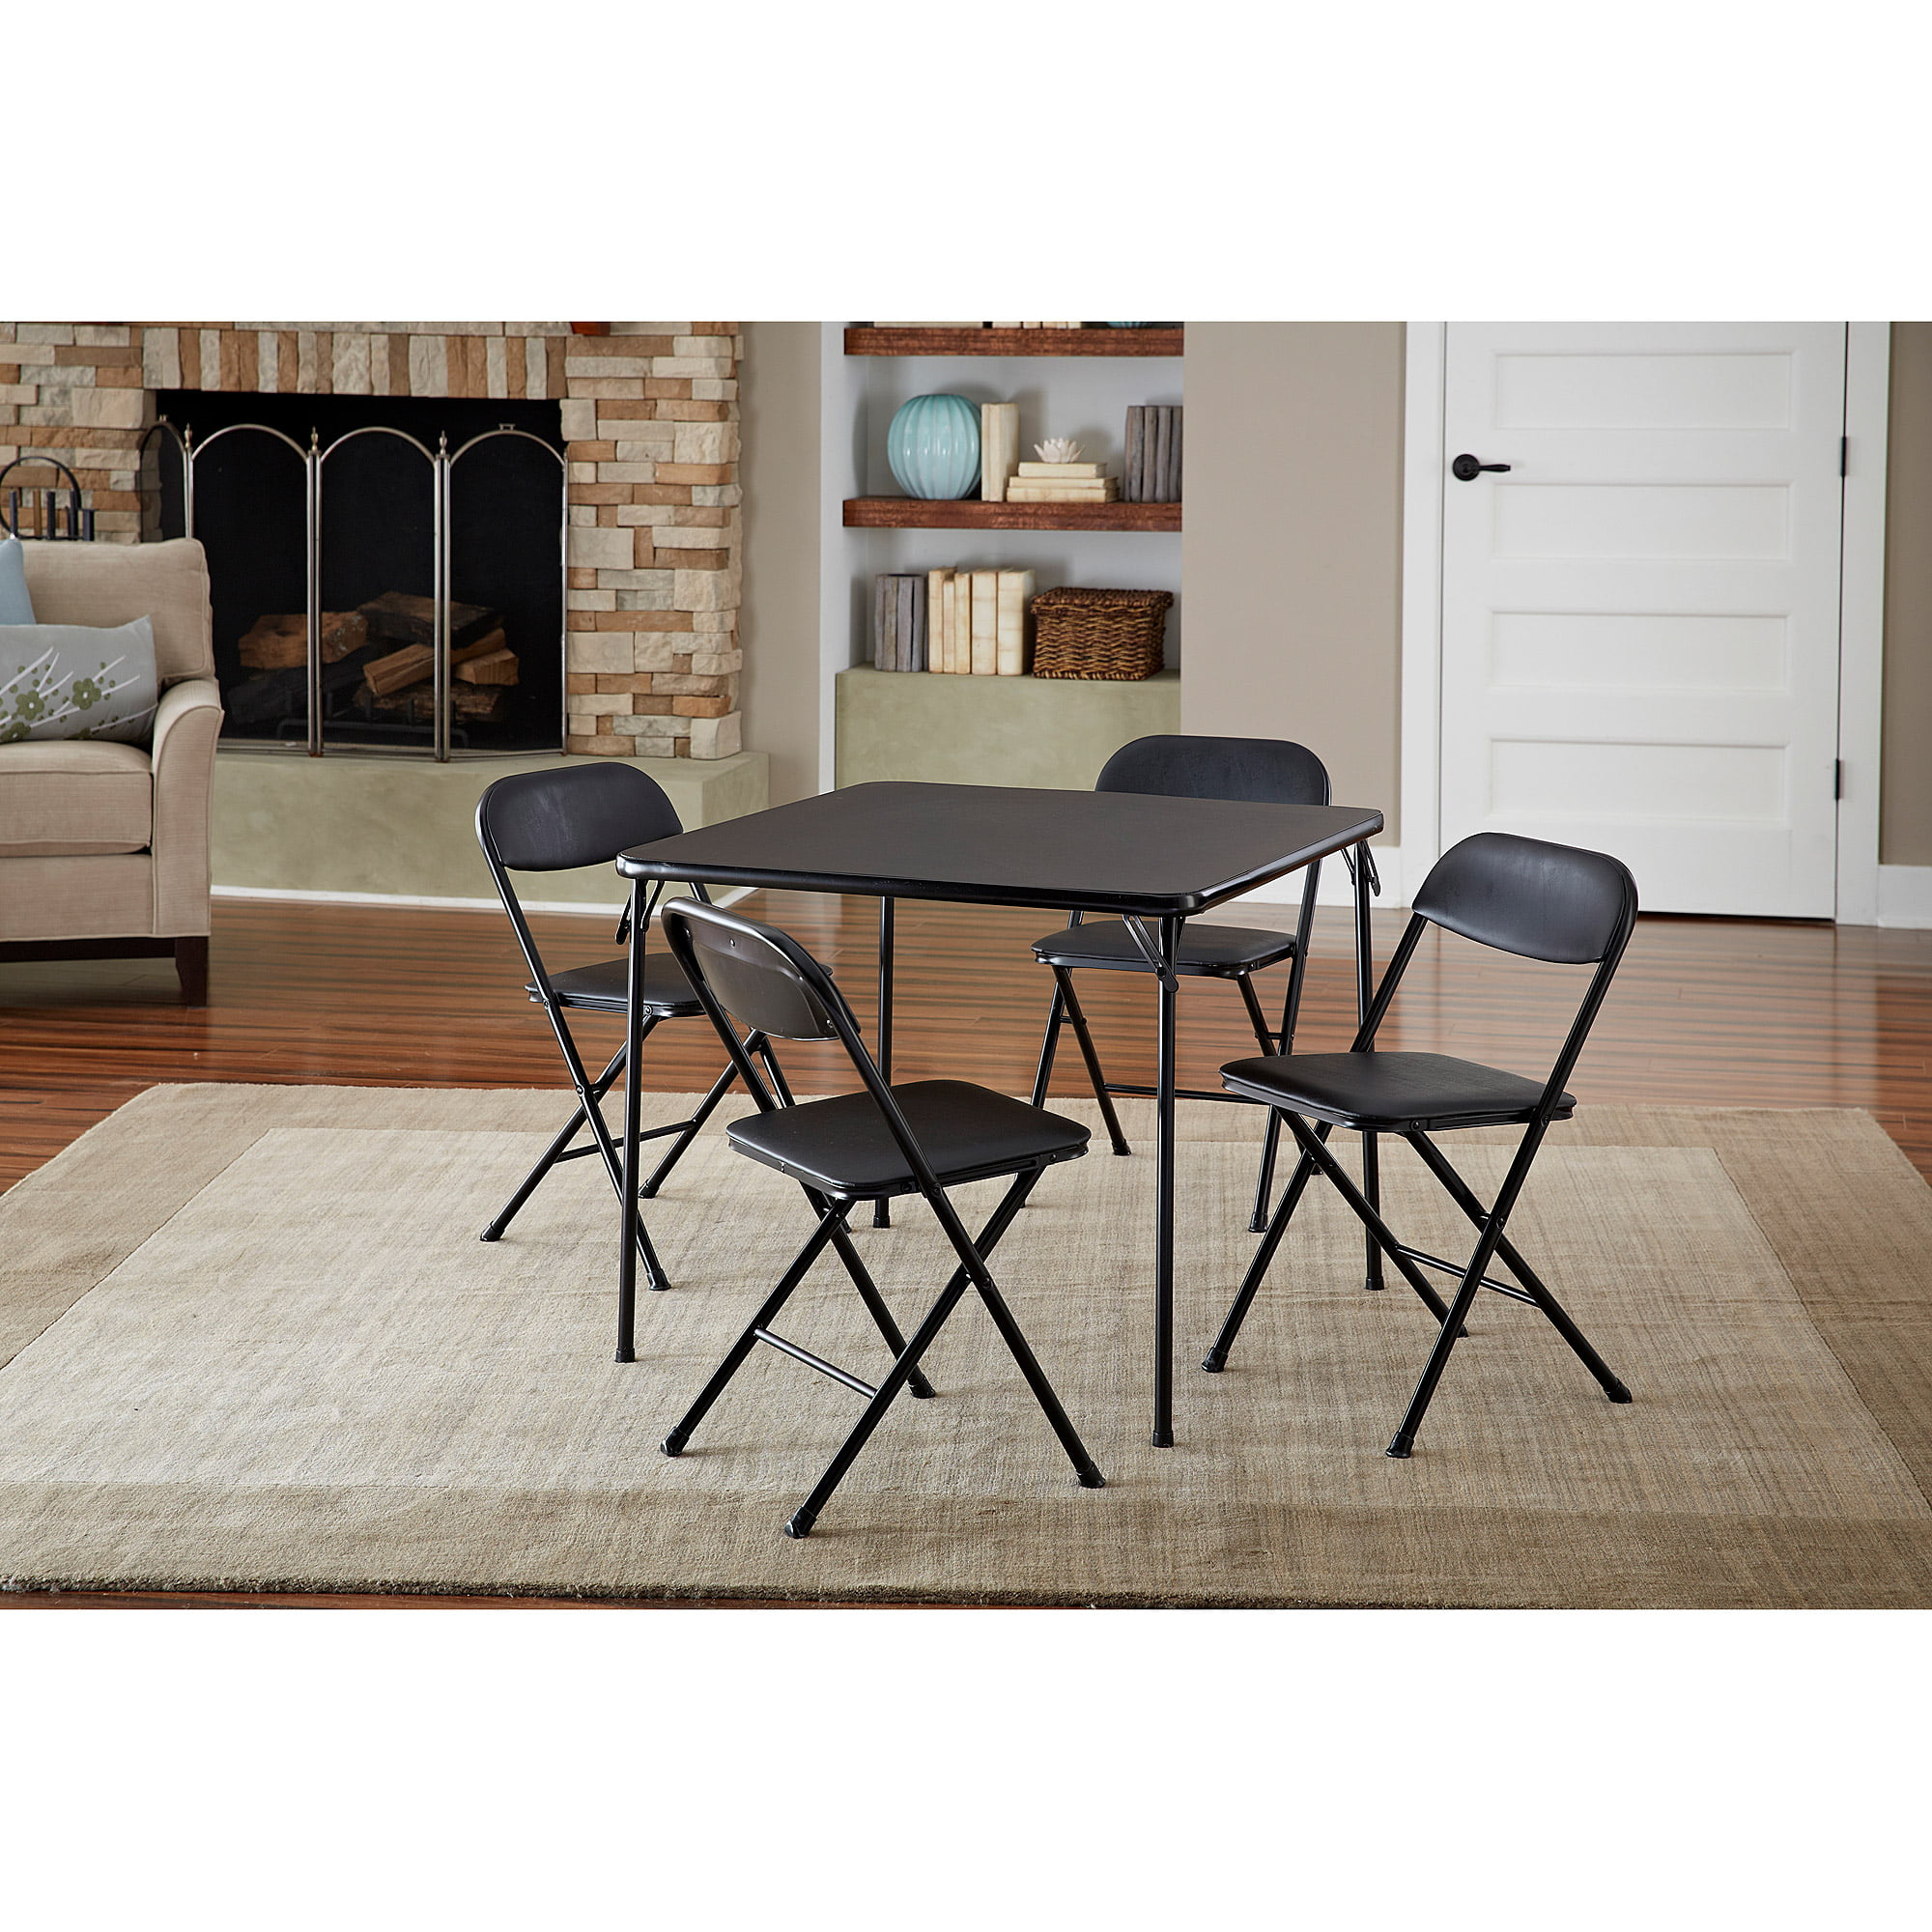 Cosco 5 Piece Card Table Set Black Walmart